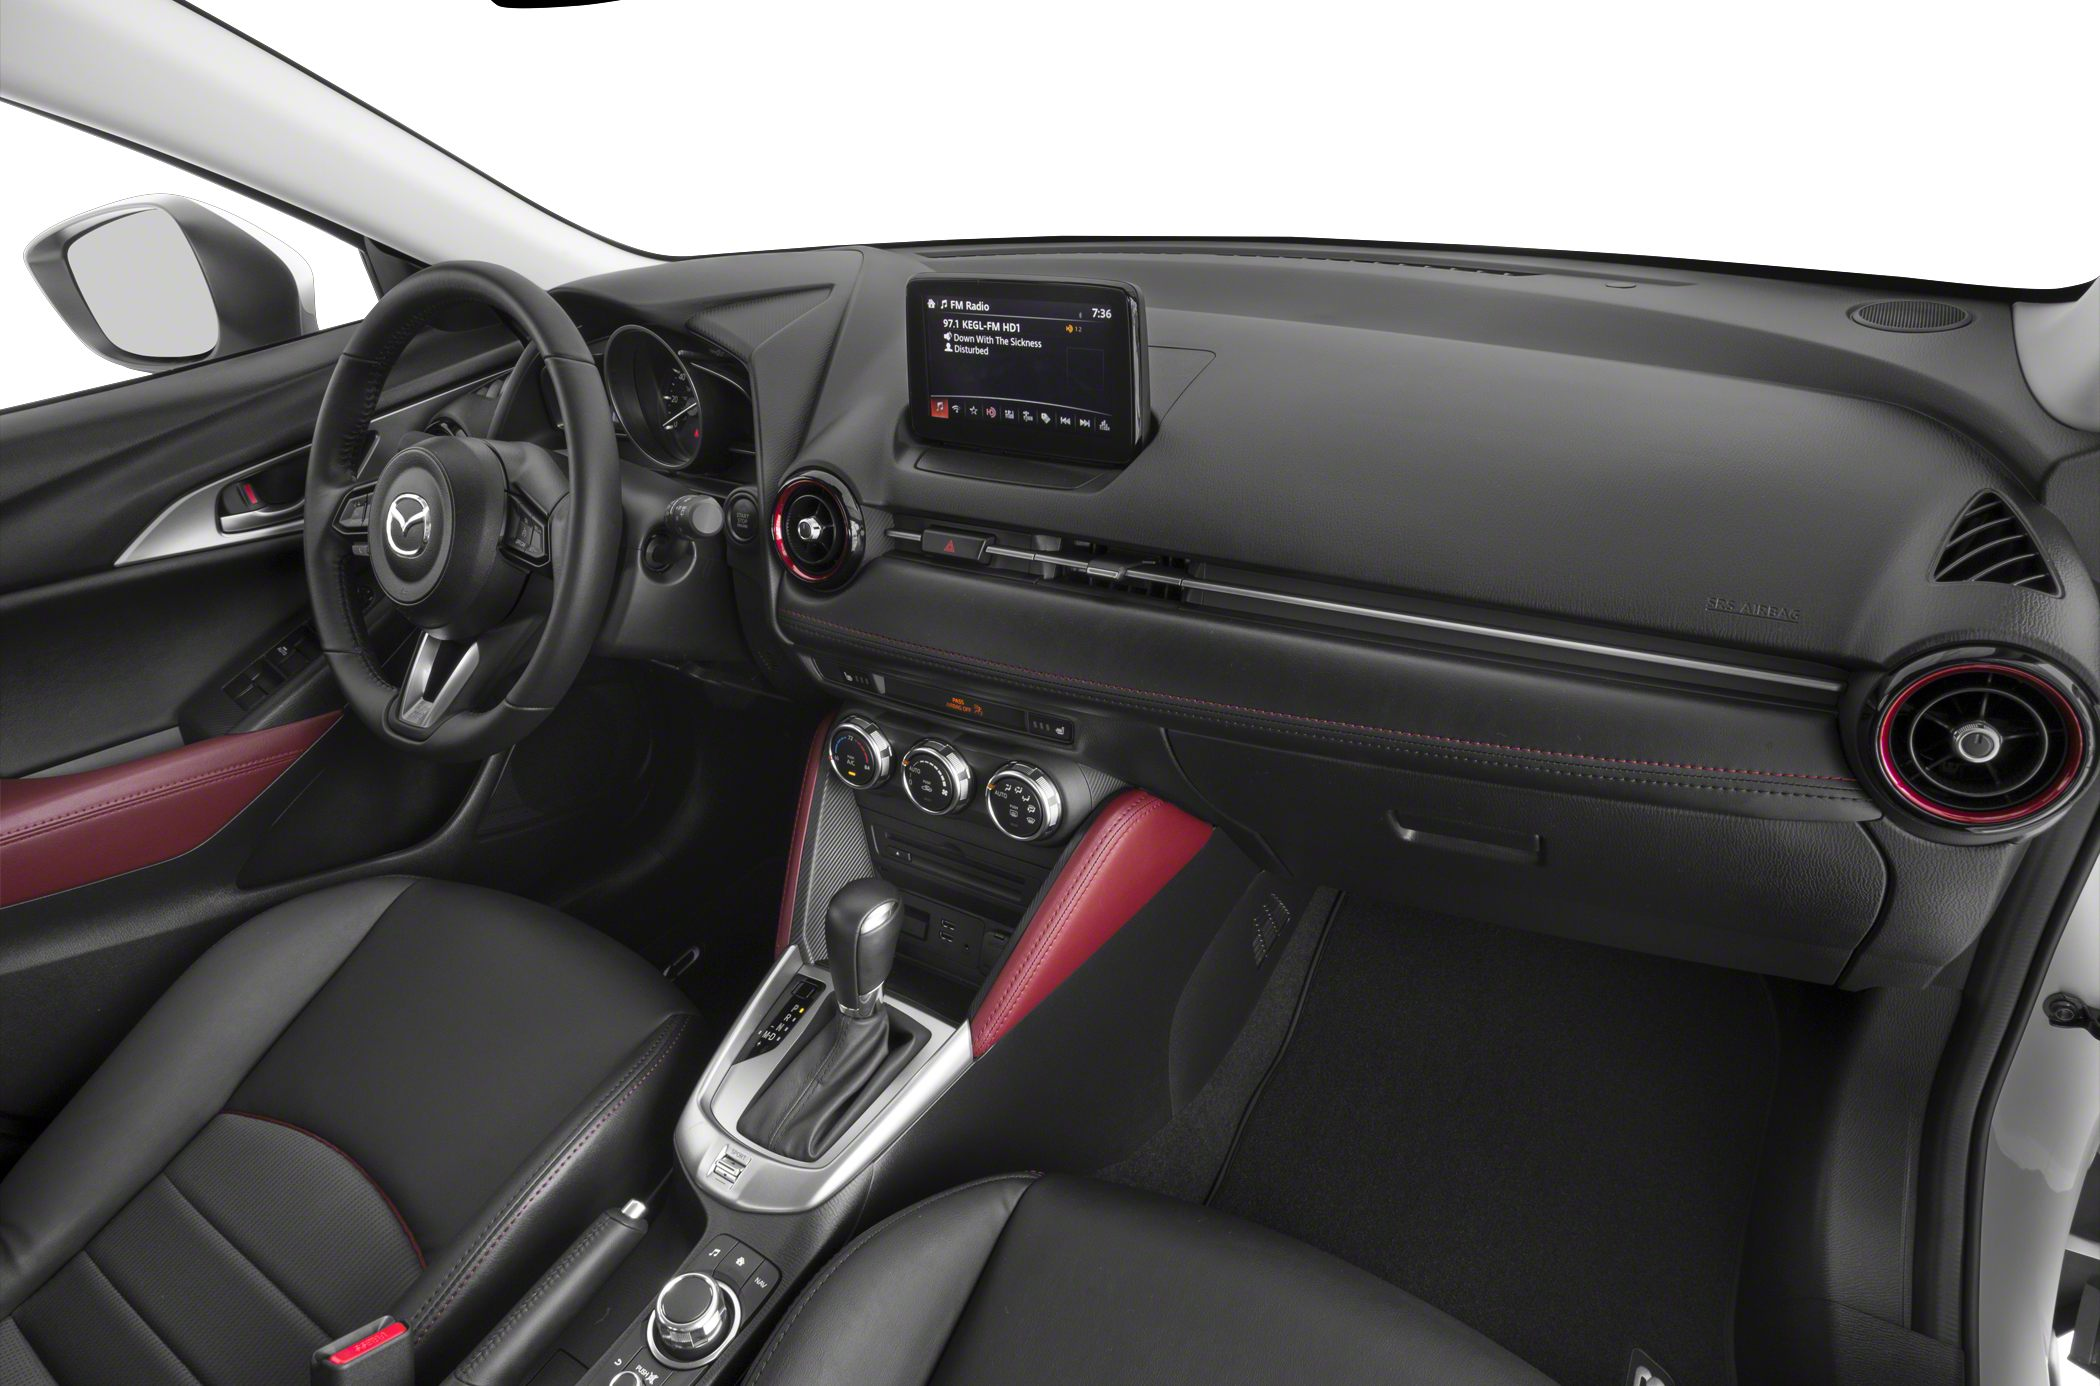 Mazda Cx 3 Release Date >> 2018 Mazda Cx 3 Deals Prices Incentives Leases Overview